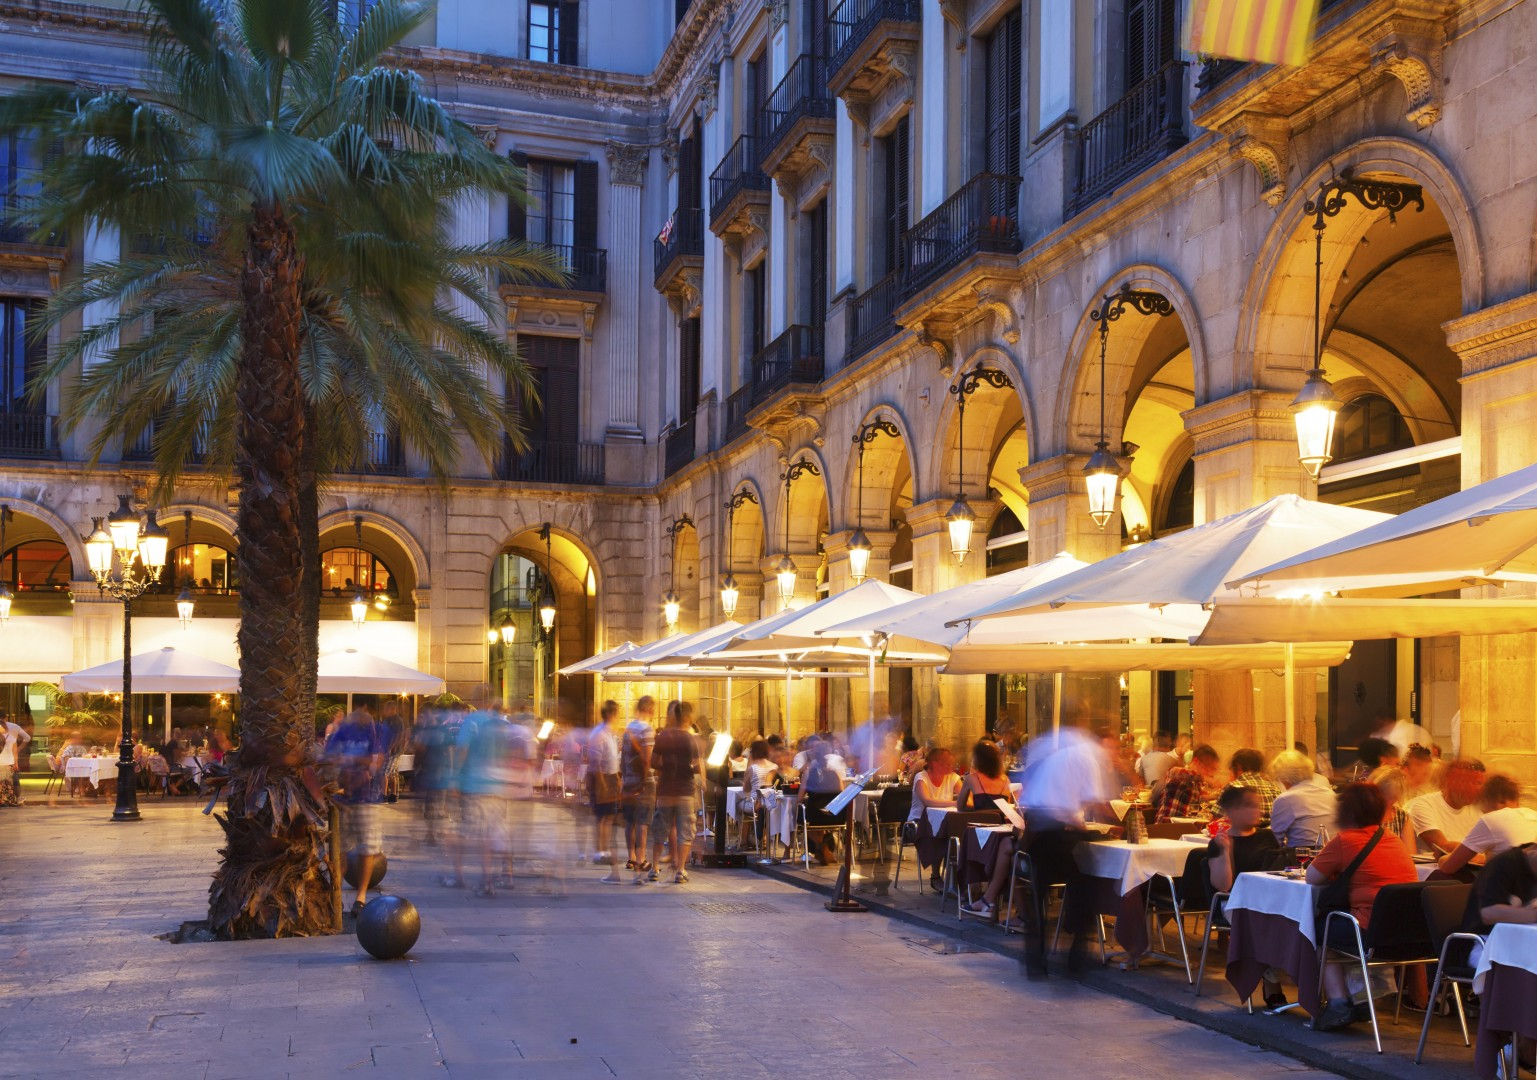 Night view of Placa Reial with restaurants in summer. Barcelona.